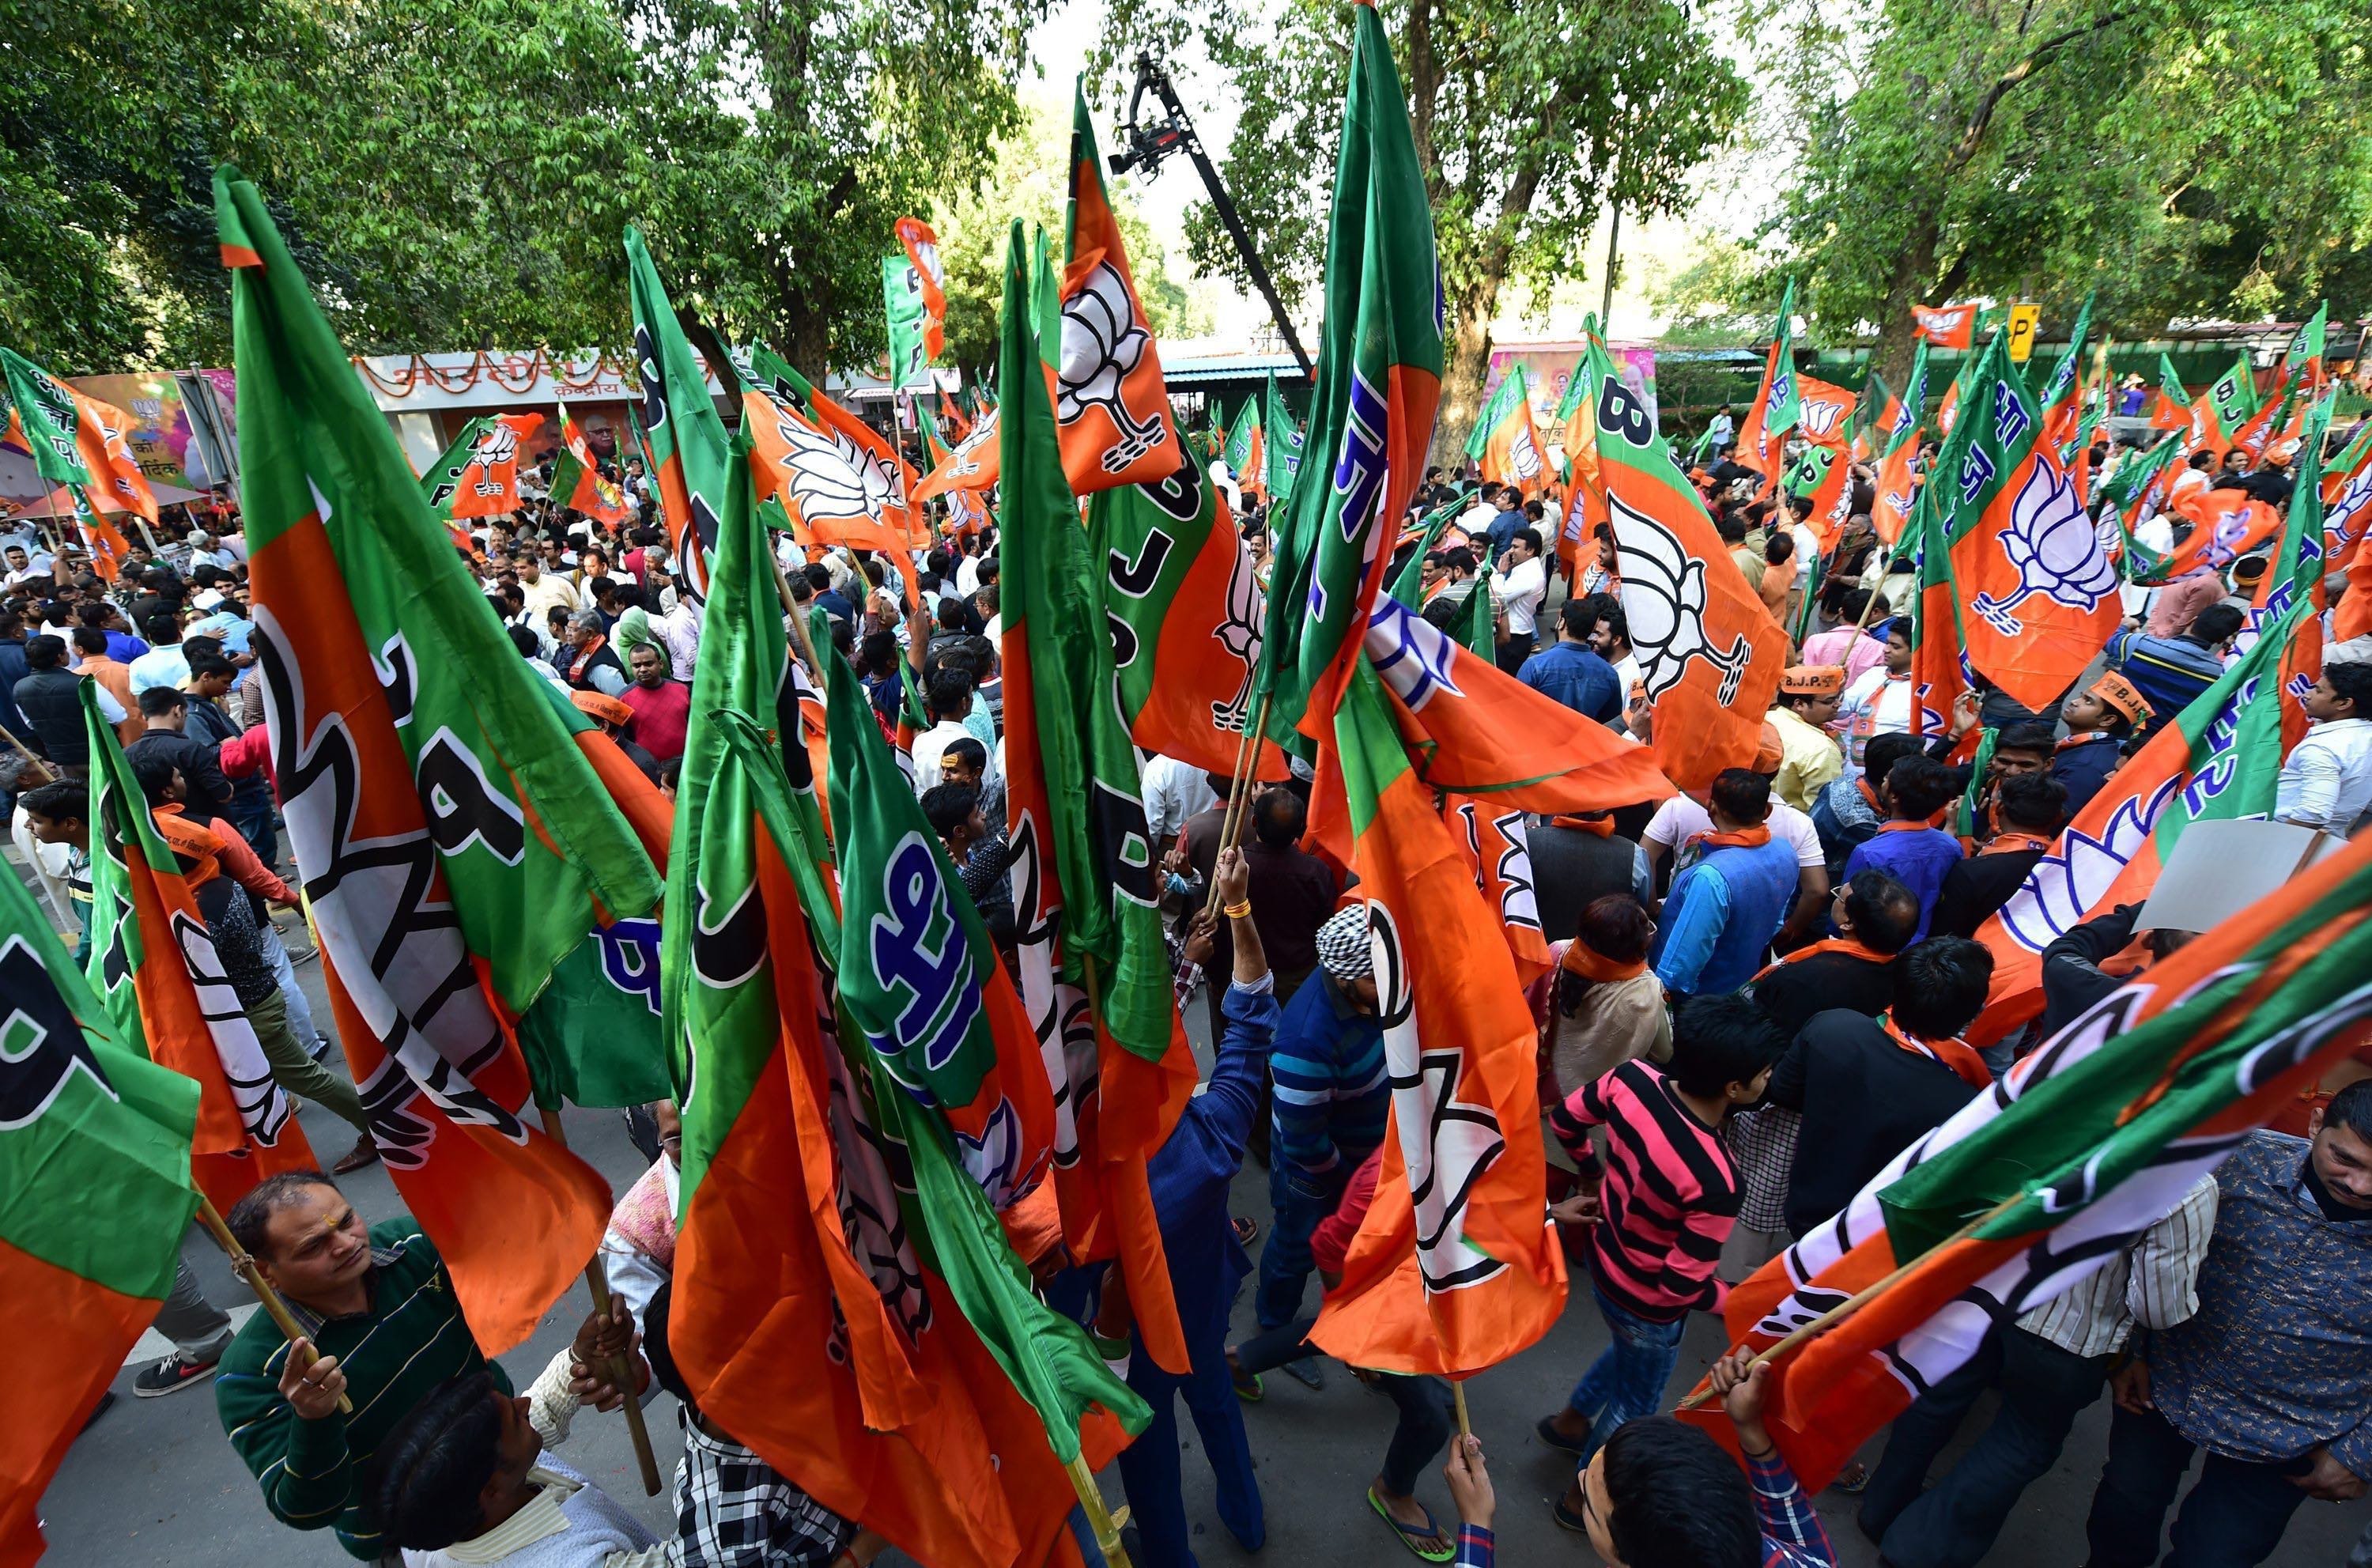 In 2018-19, Donations Received by BJP Were Thrice the Aggregate of Five Other Parties